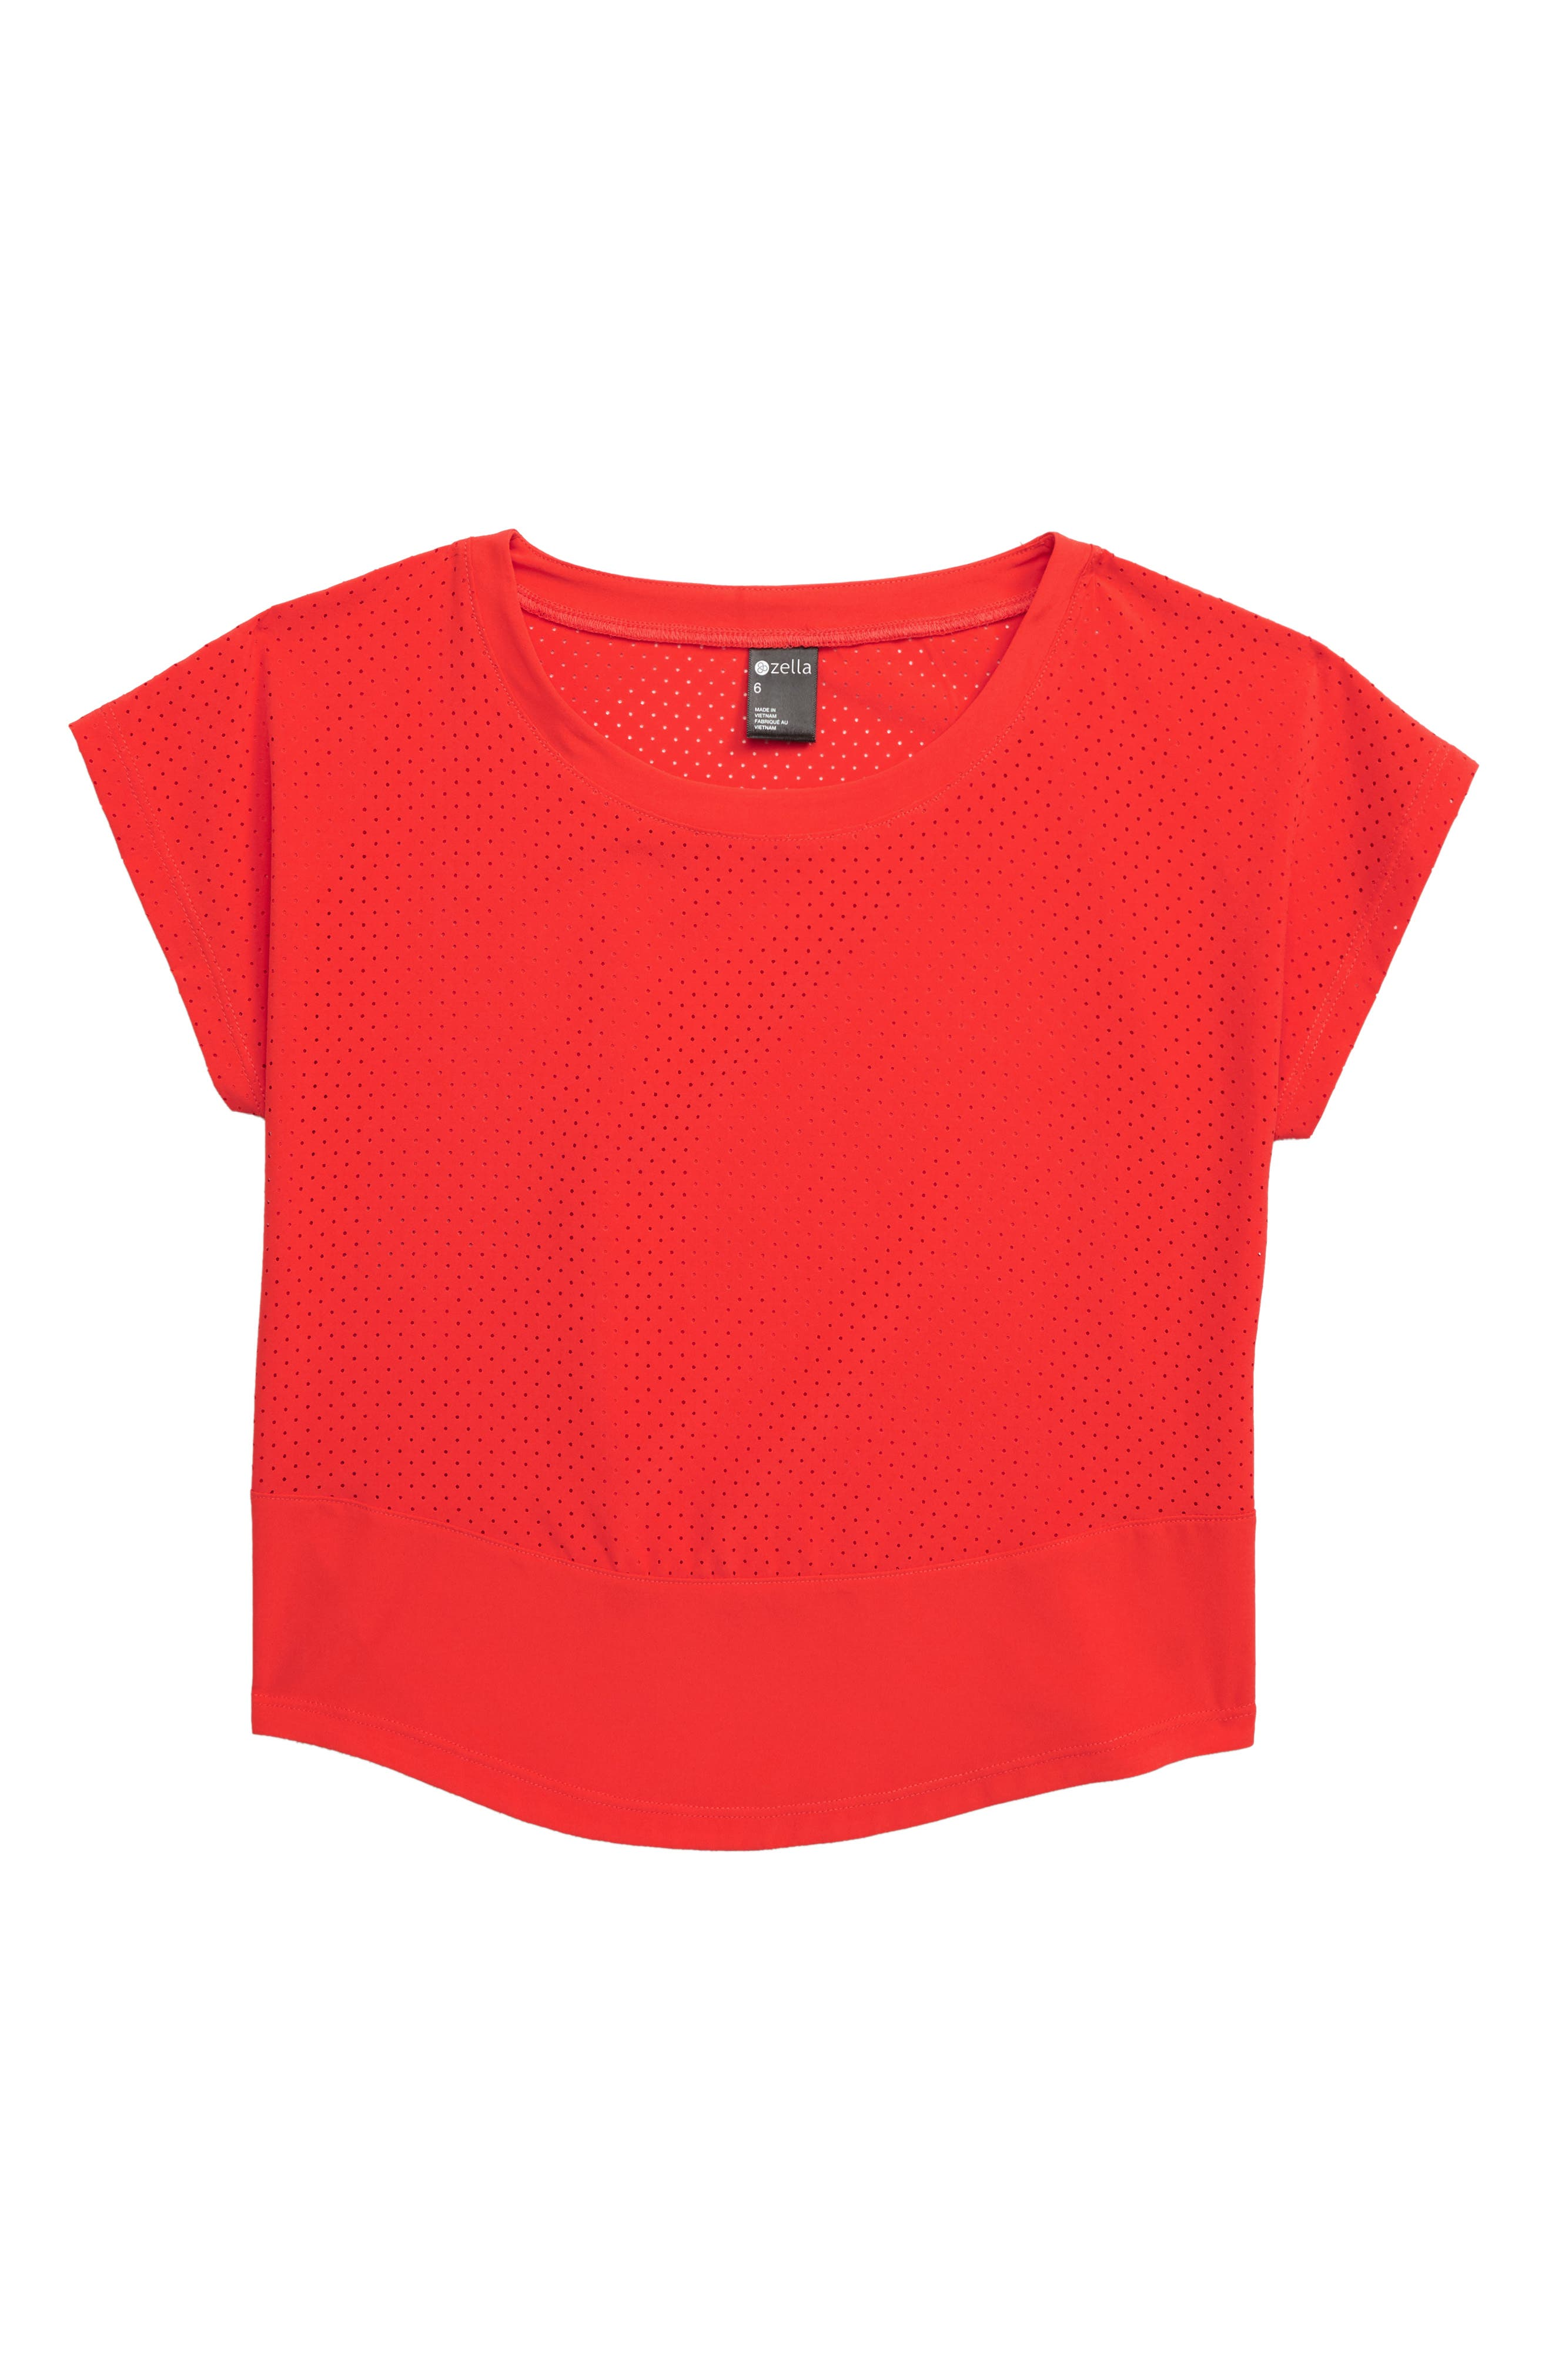 ZELLA GIRL Perforated Shirt, Main, color, RED POPPY